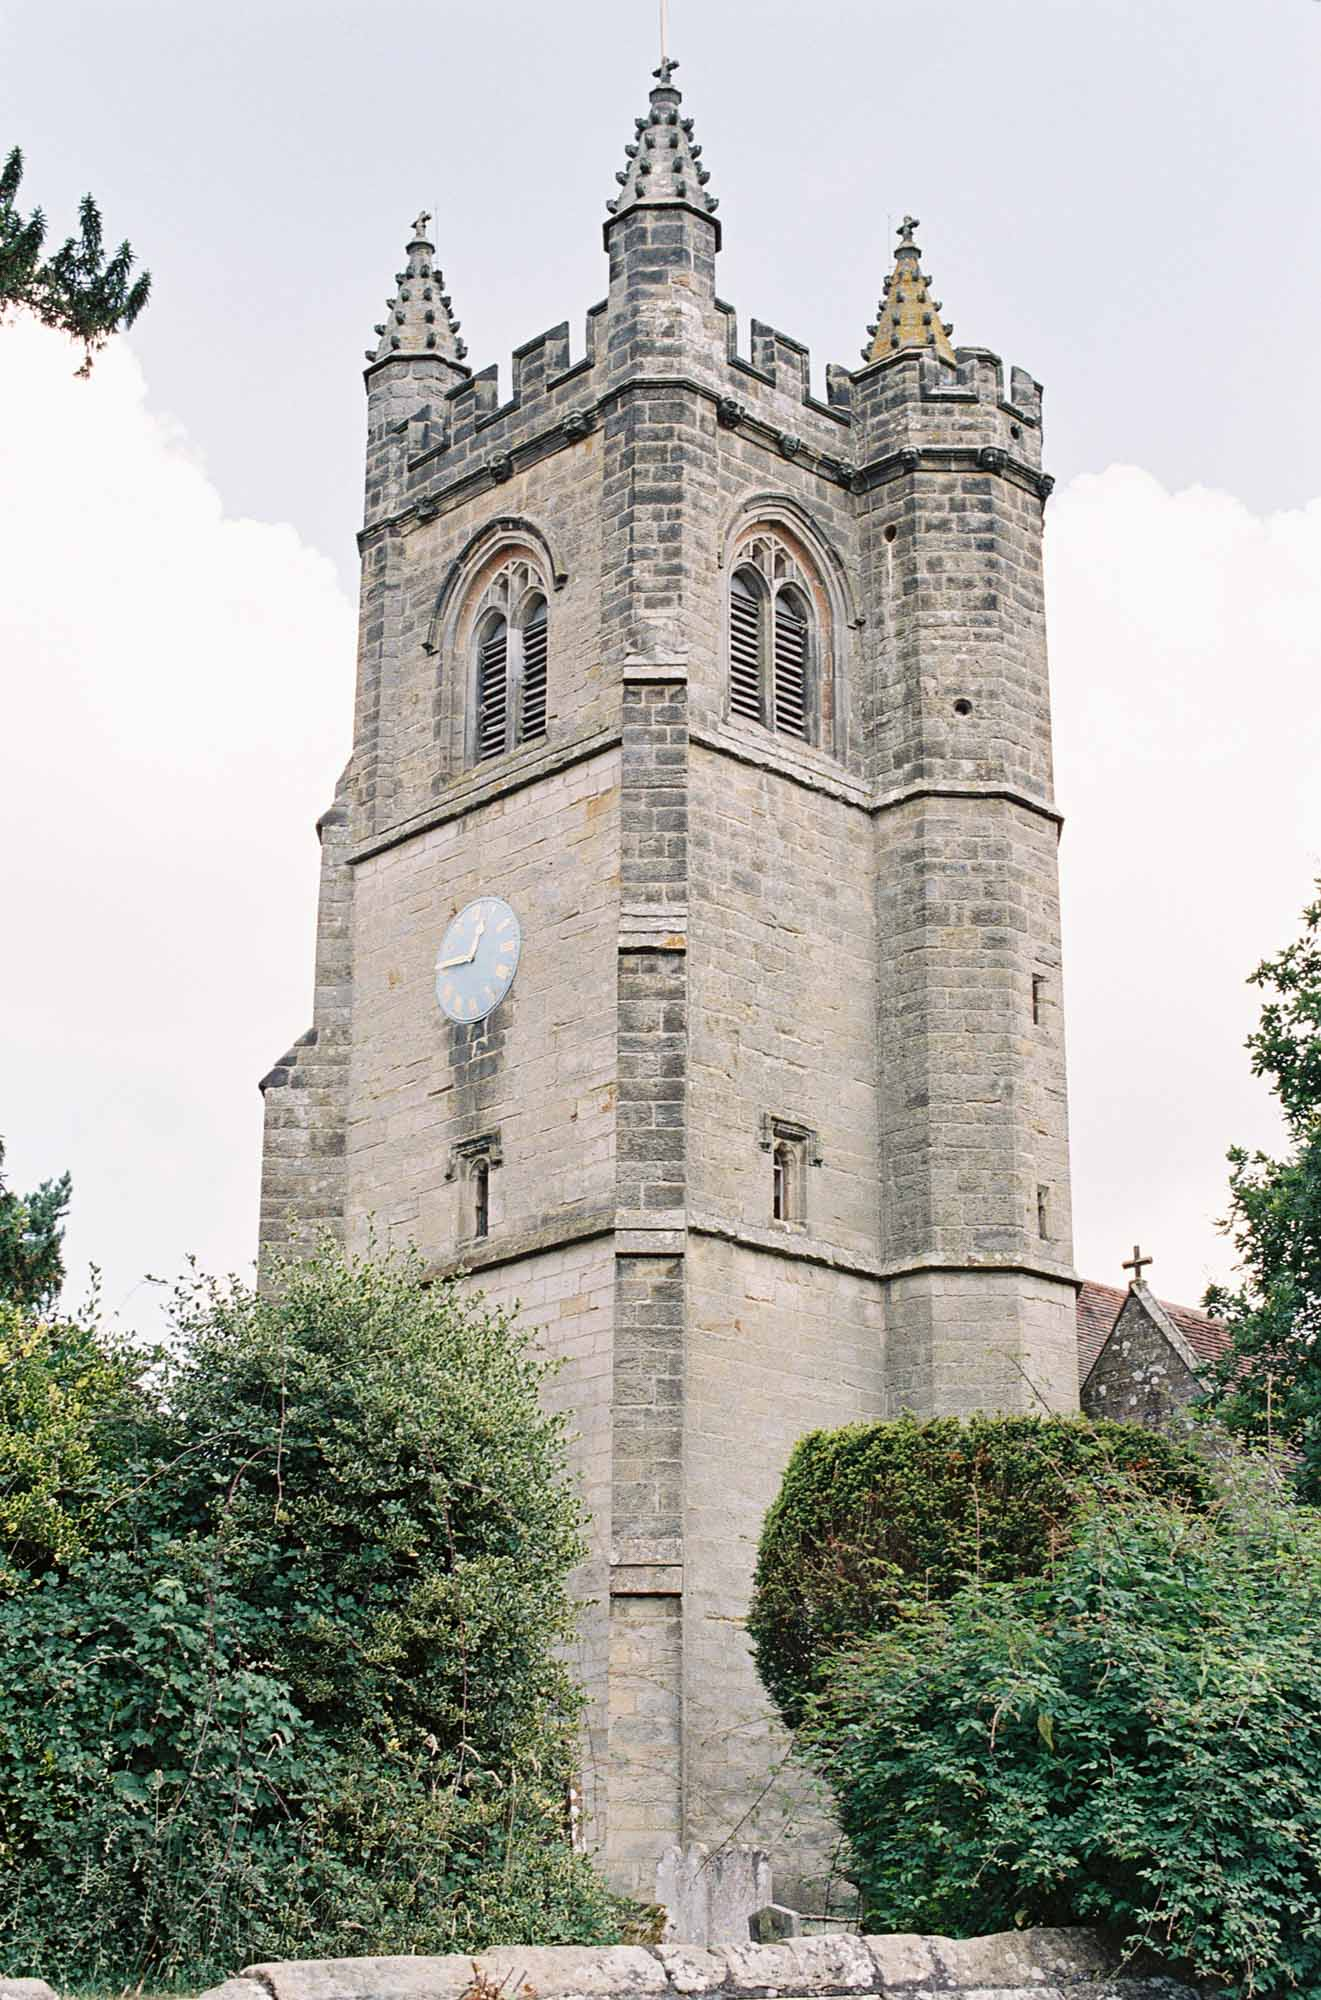 Church captured by Chiddingstone Castle wedding photographer Camilla Arnhold